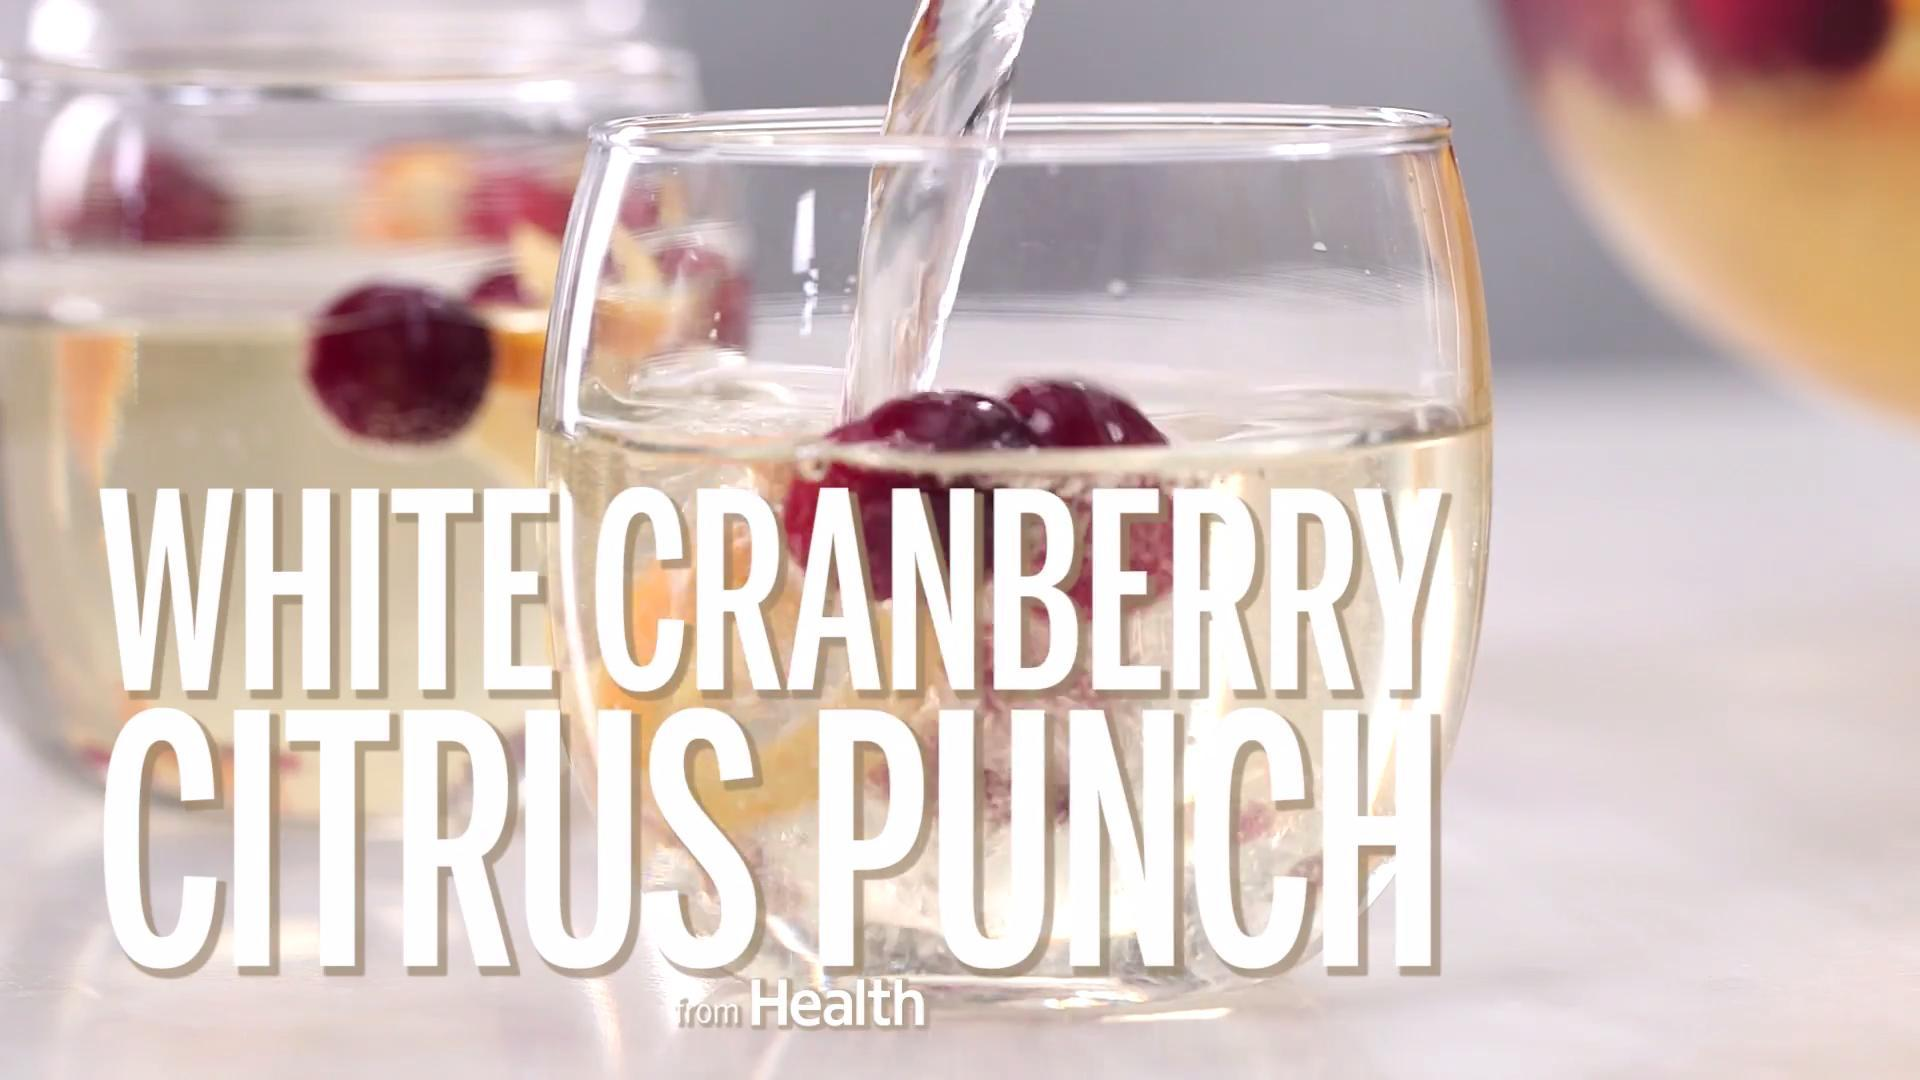 How to Make White Cranberry Citrus Punch